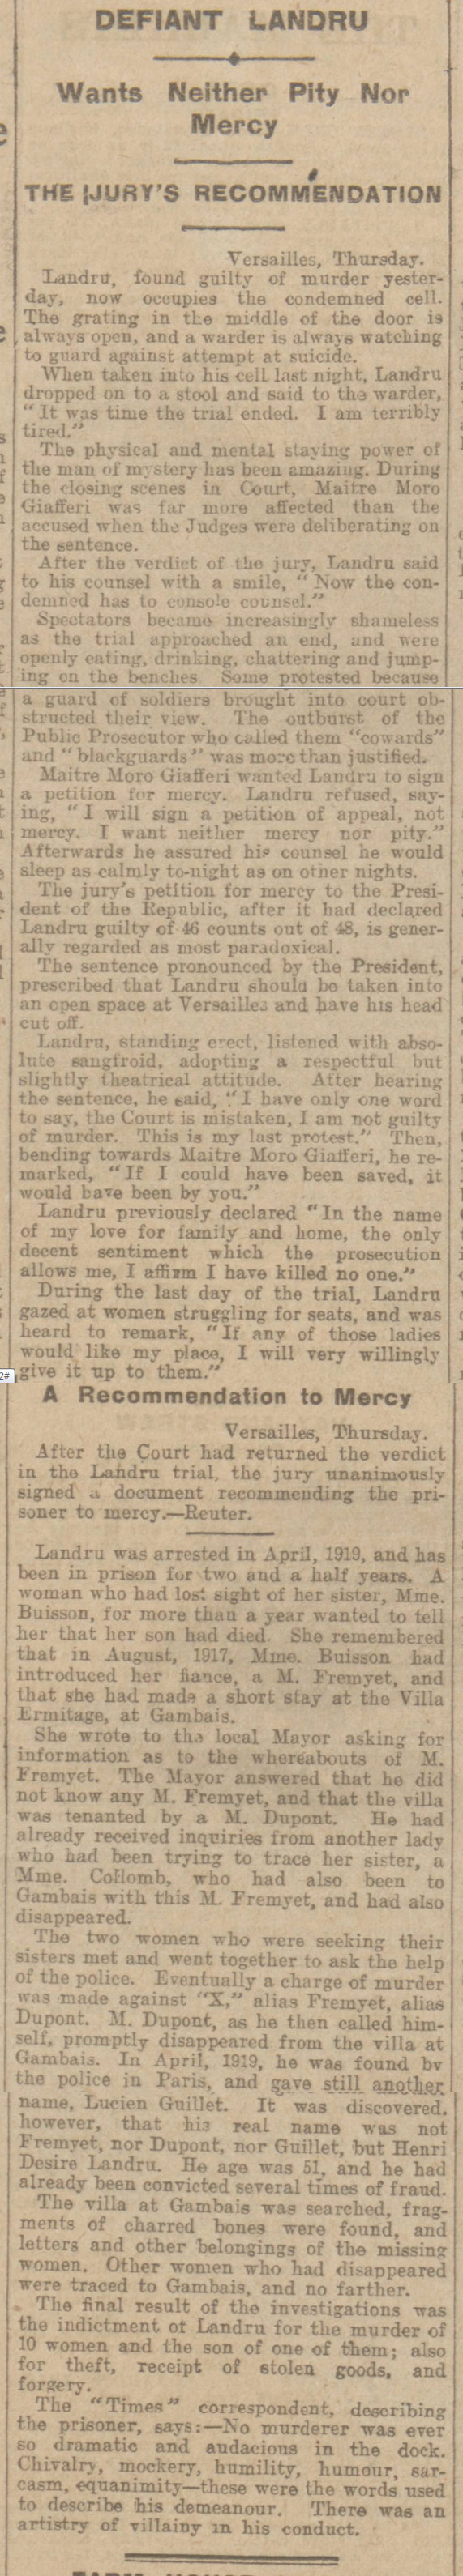 historical newspaper report on Henri Desire Landru